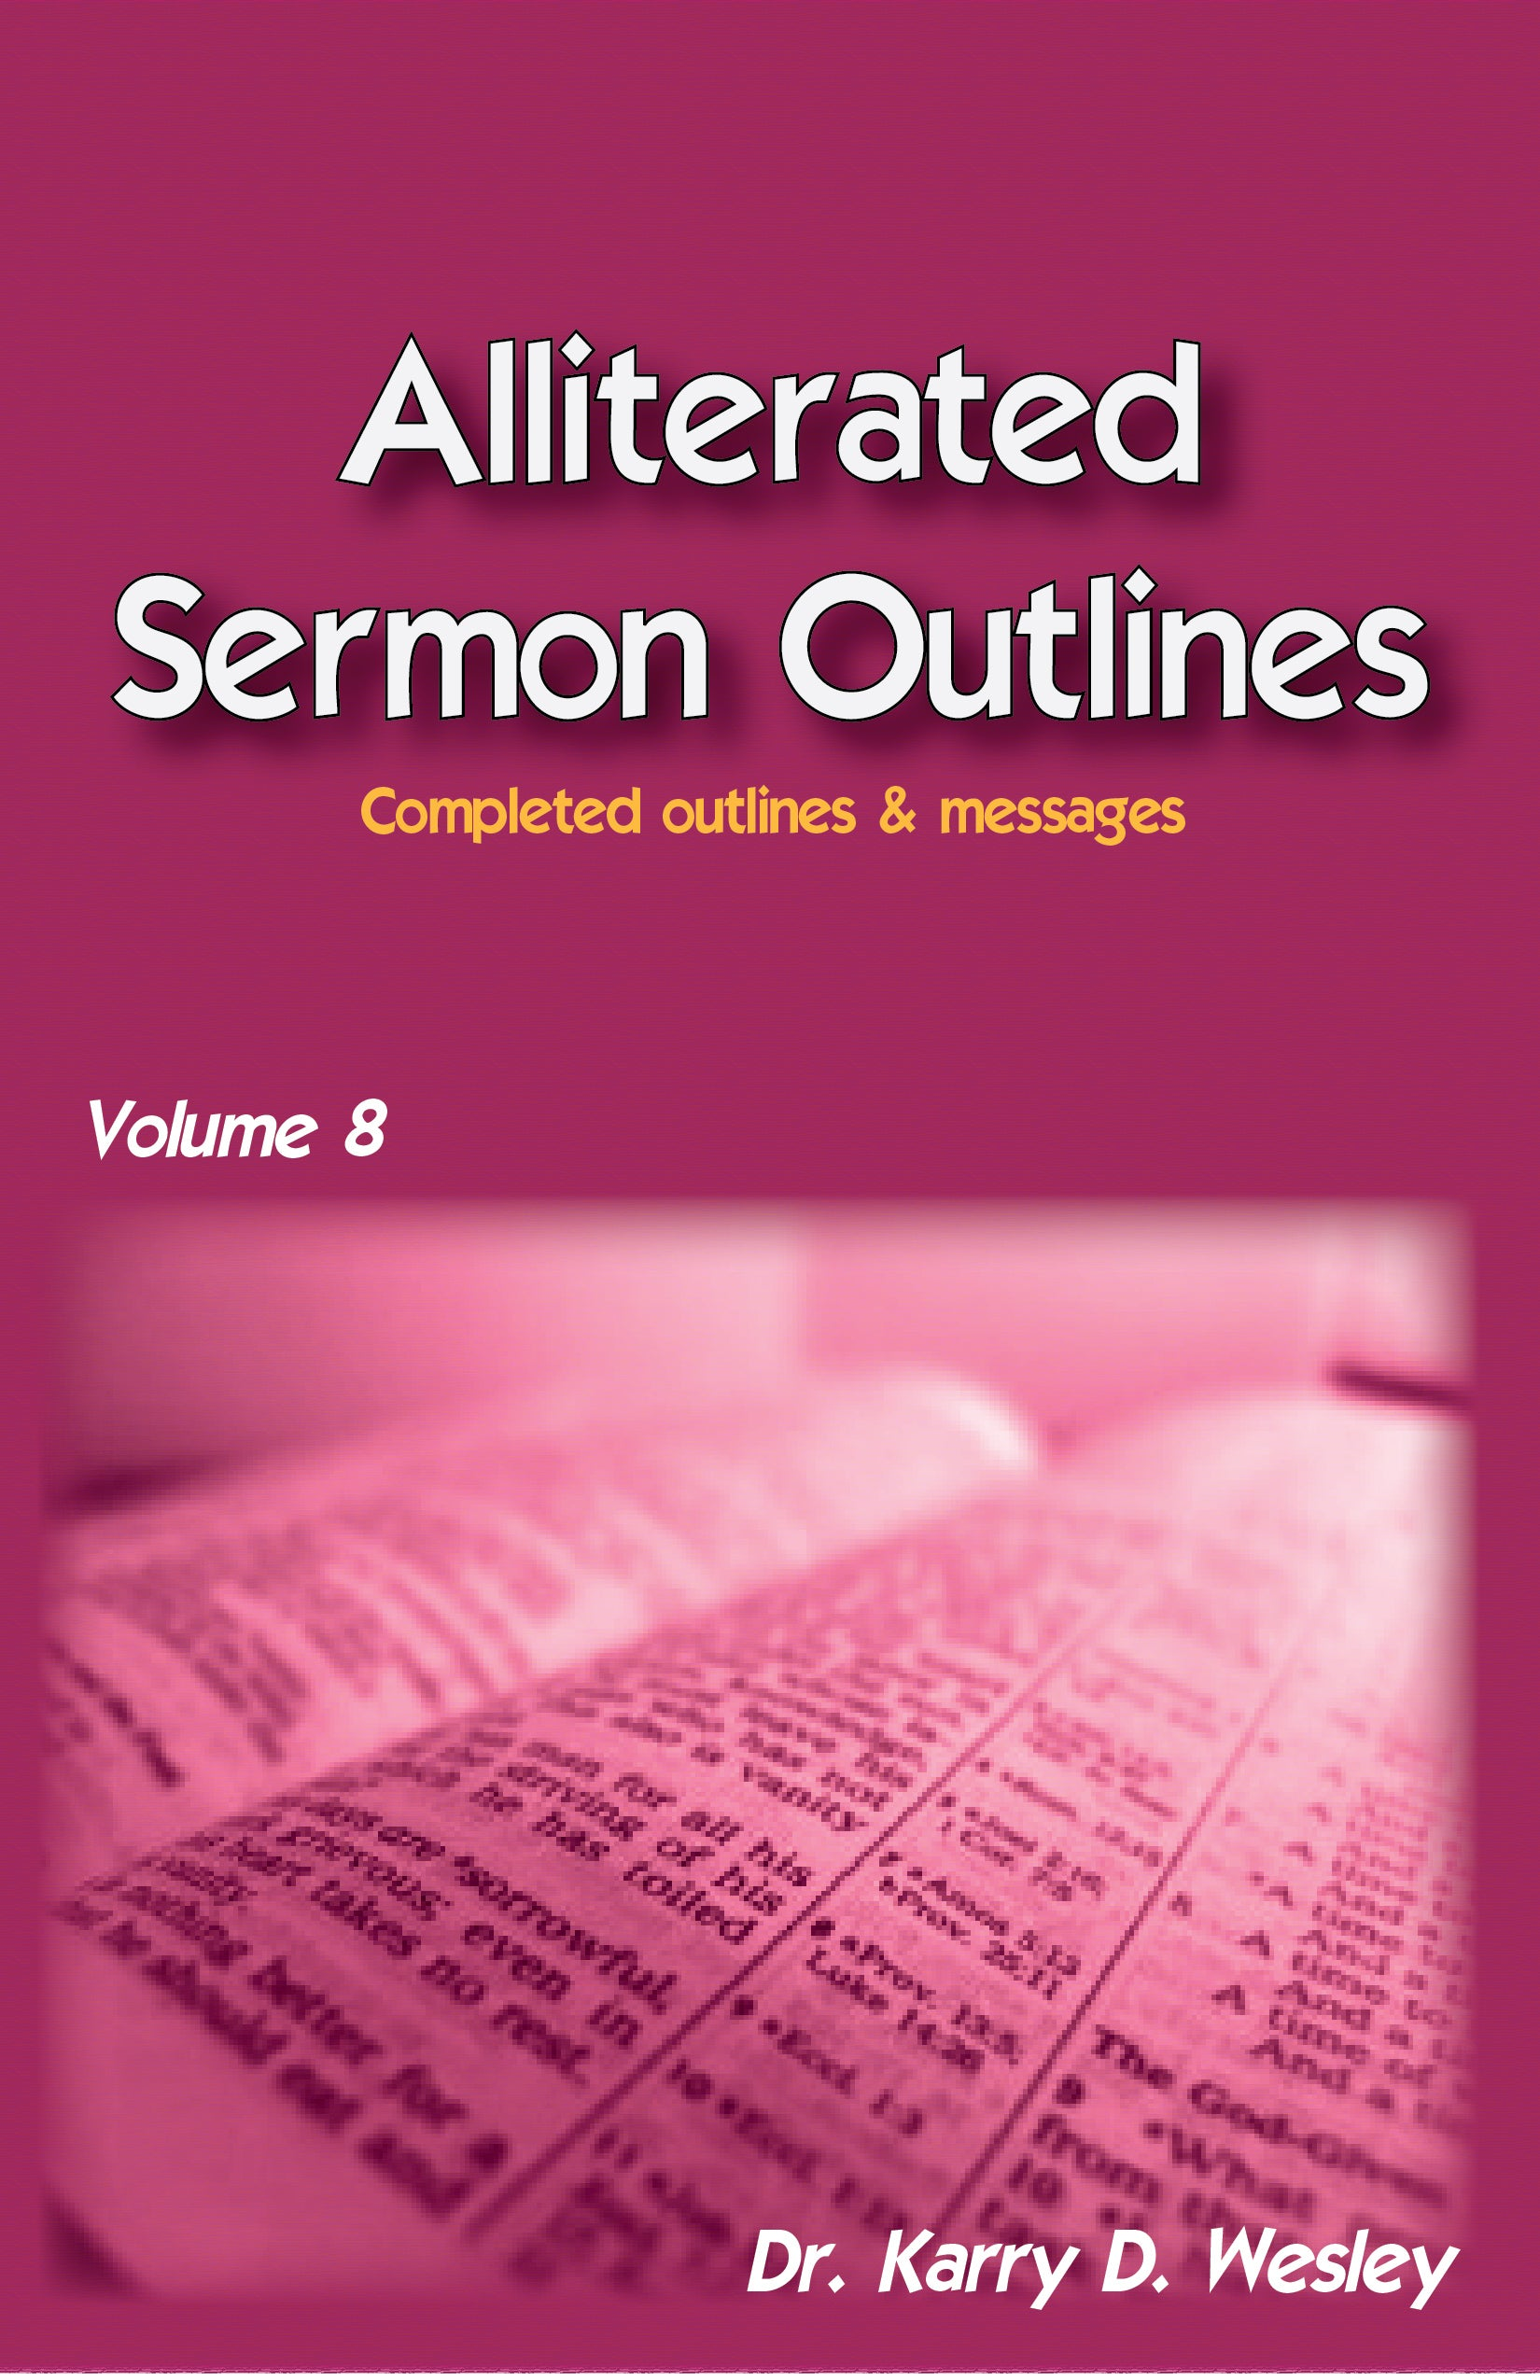 Alliterated Sermons - Volume 8